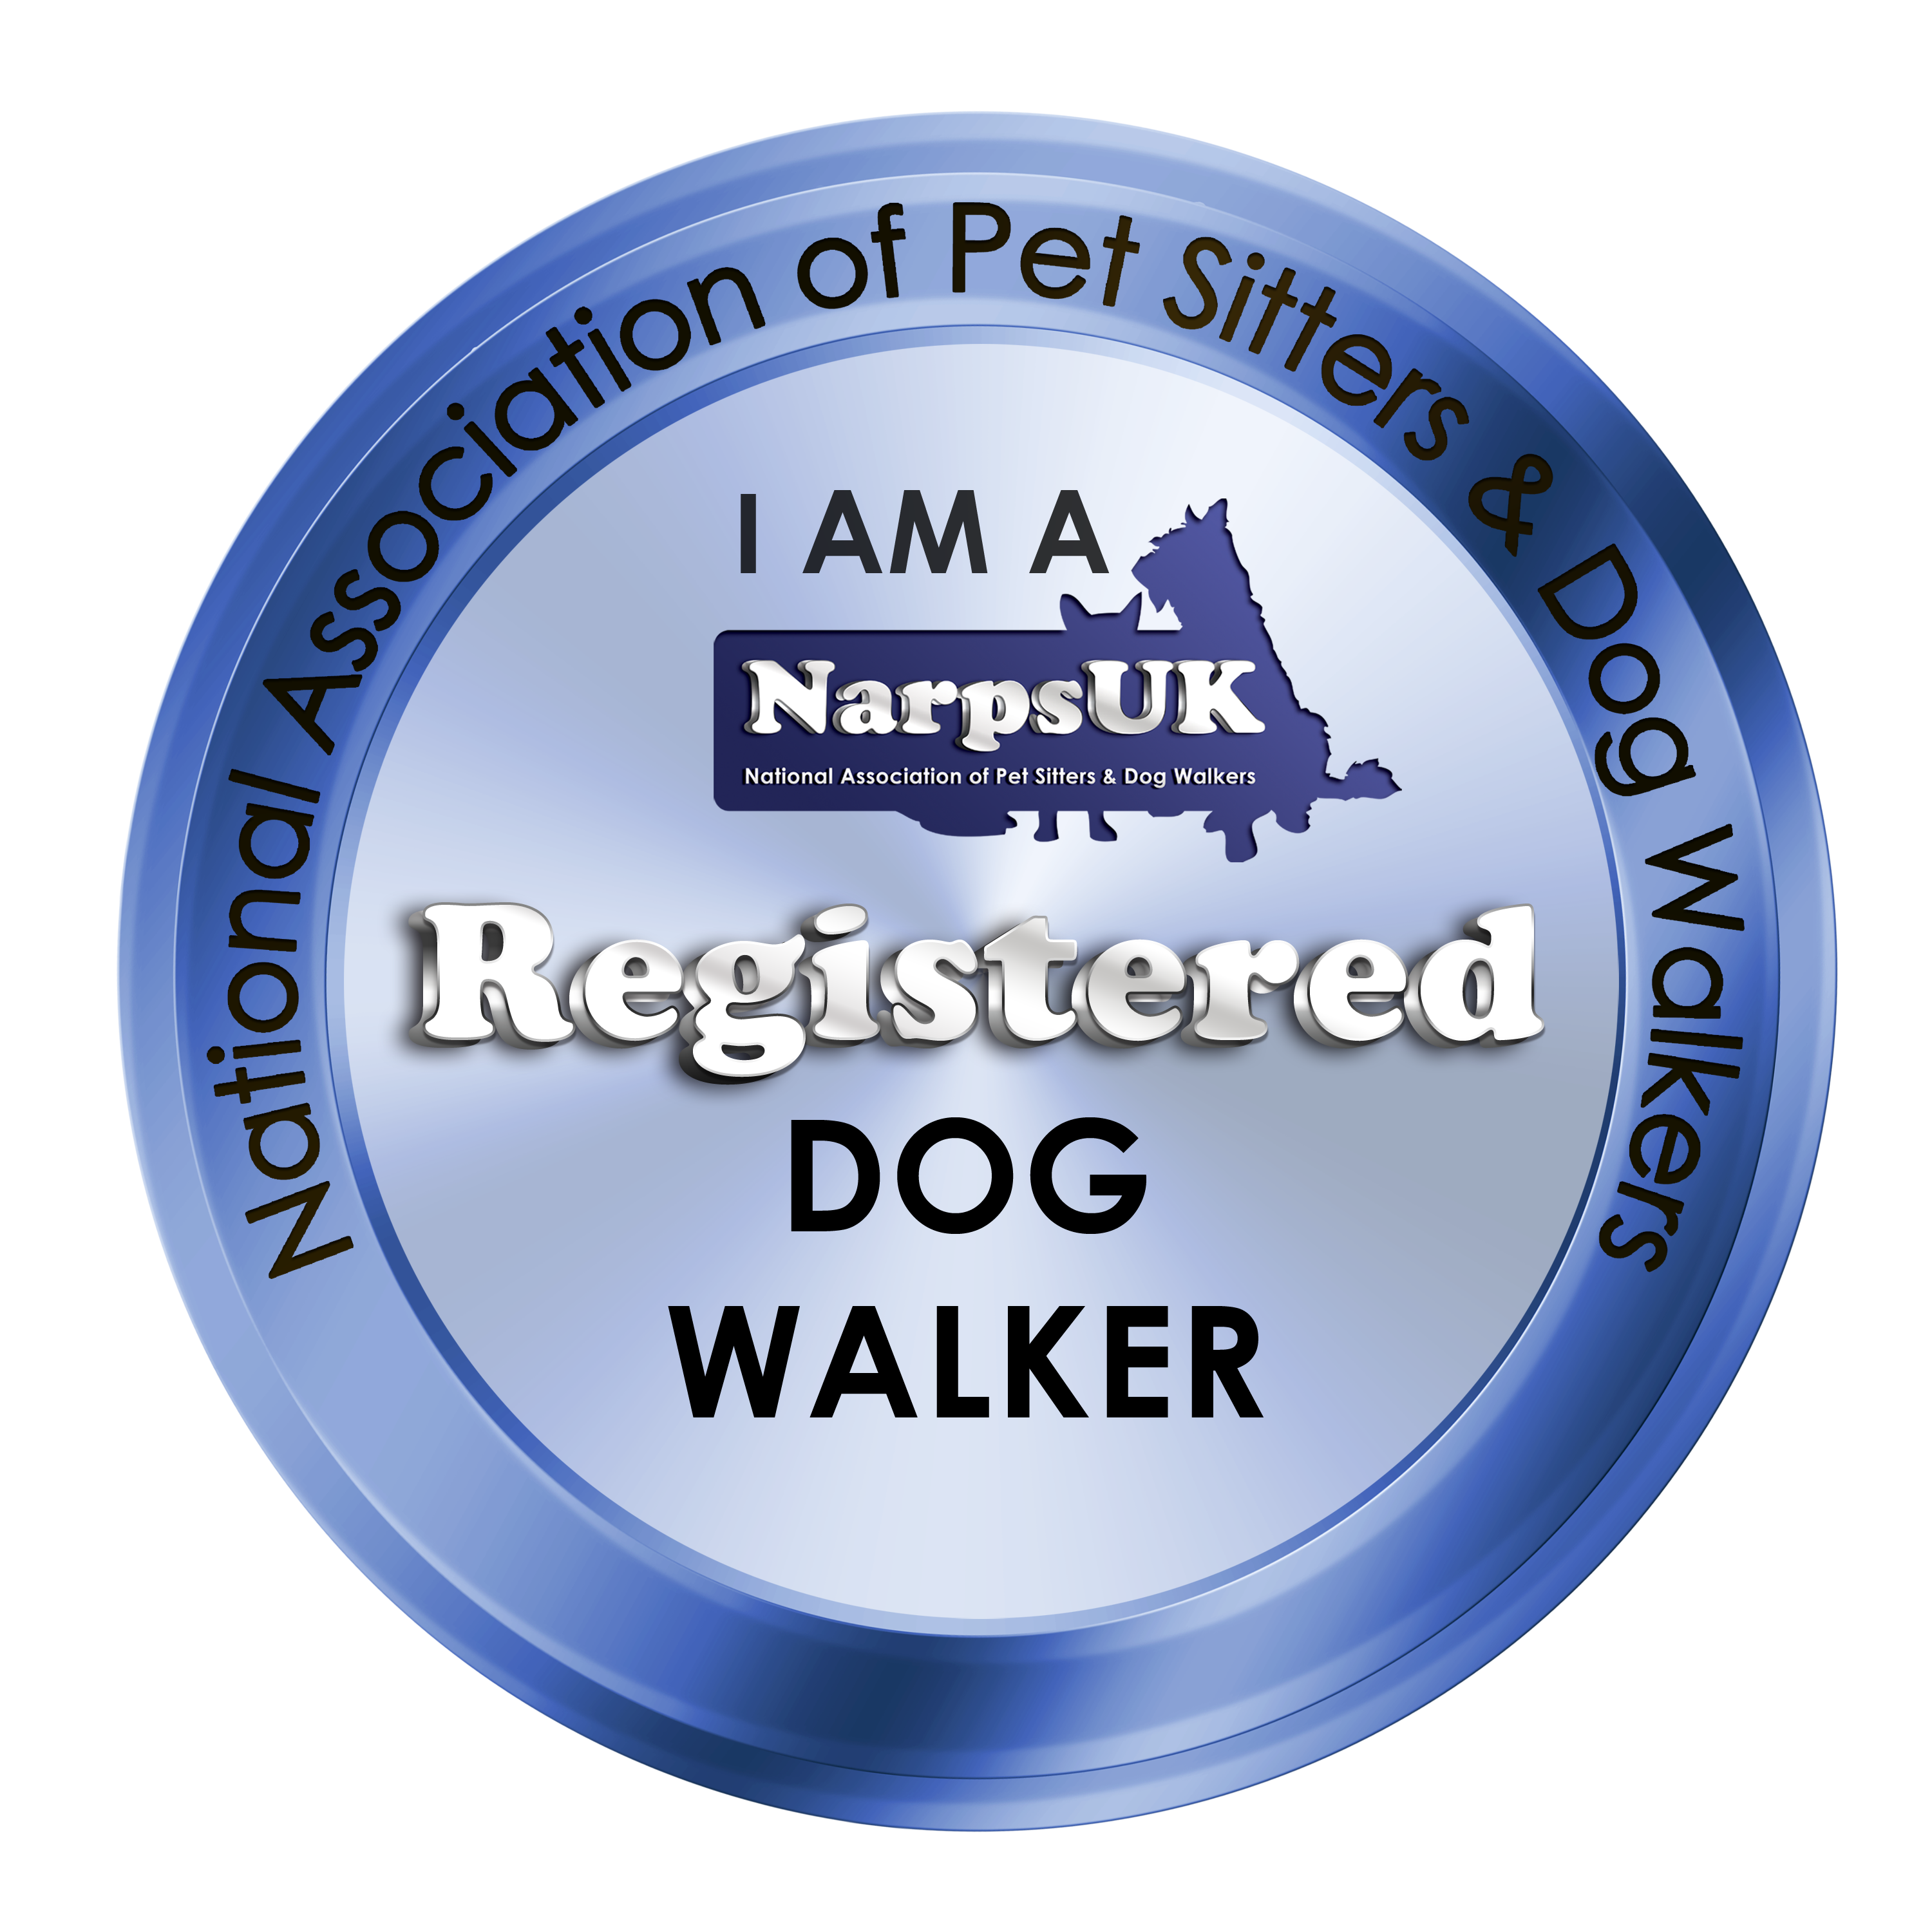 Dog Walkers & Pet Sitters. Fully Registered in Berkshire and Oxfordshire